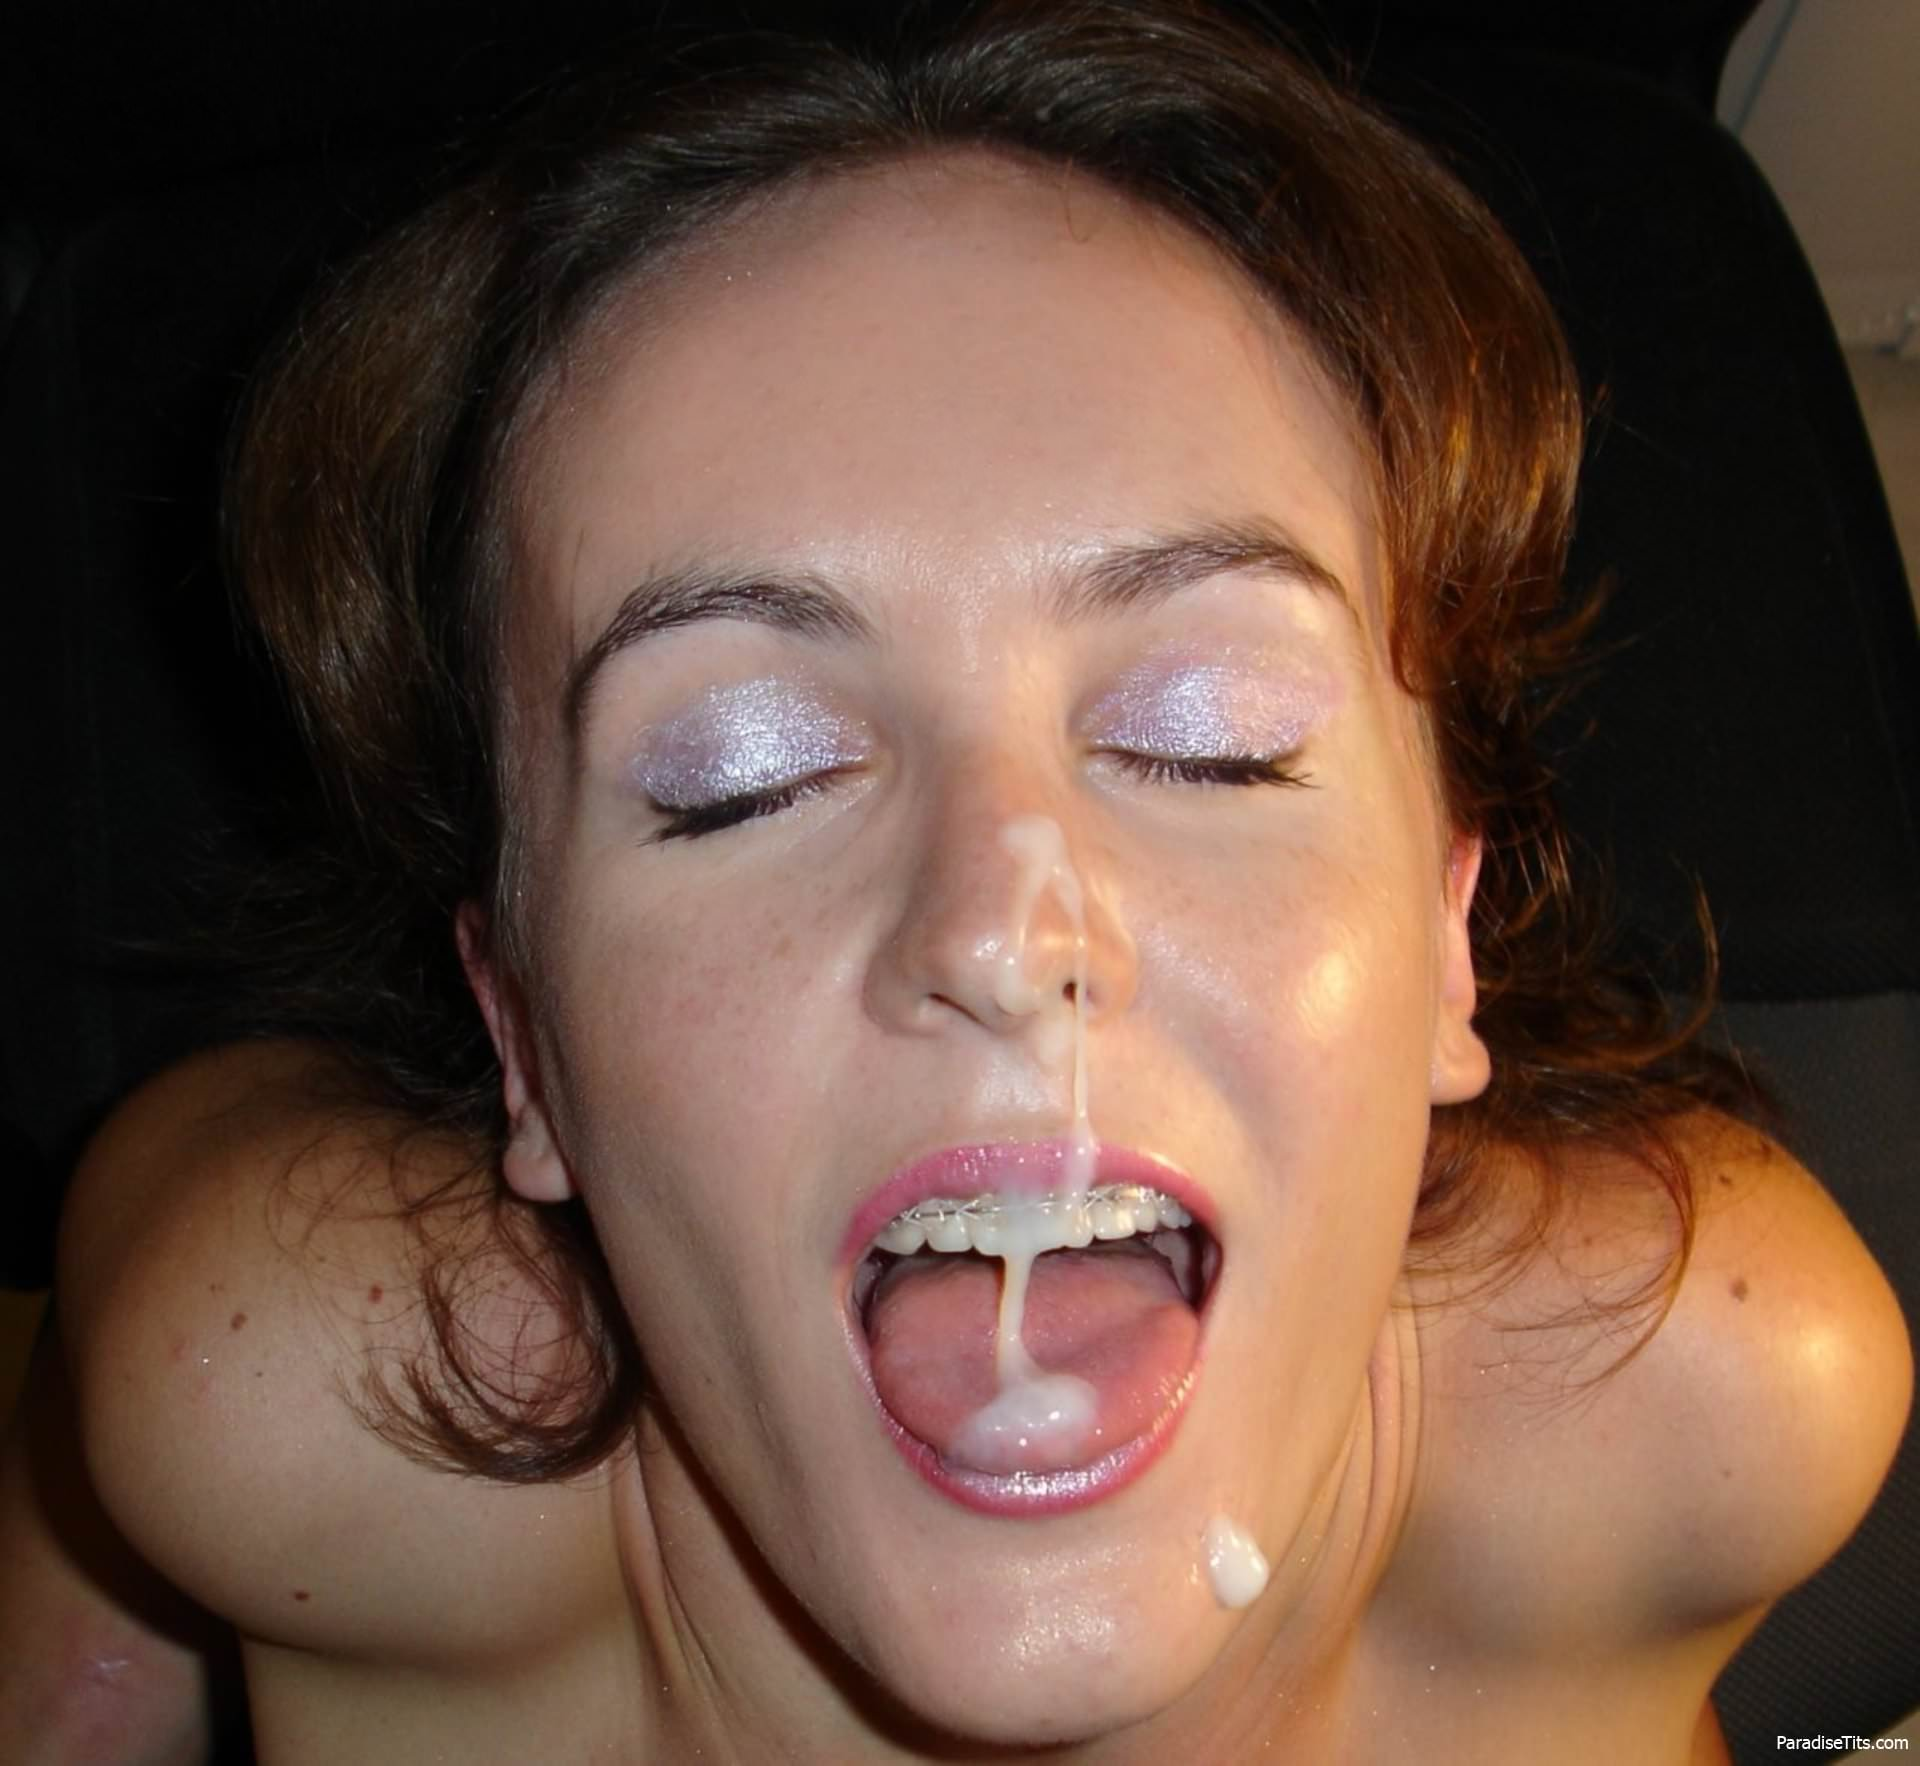 Surprise deepthroat cumshot